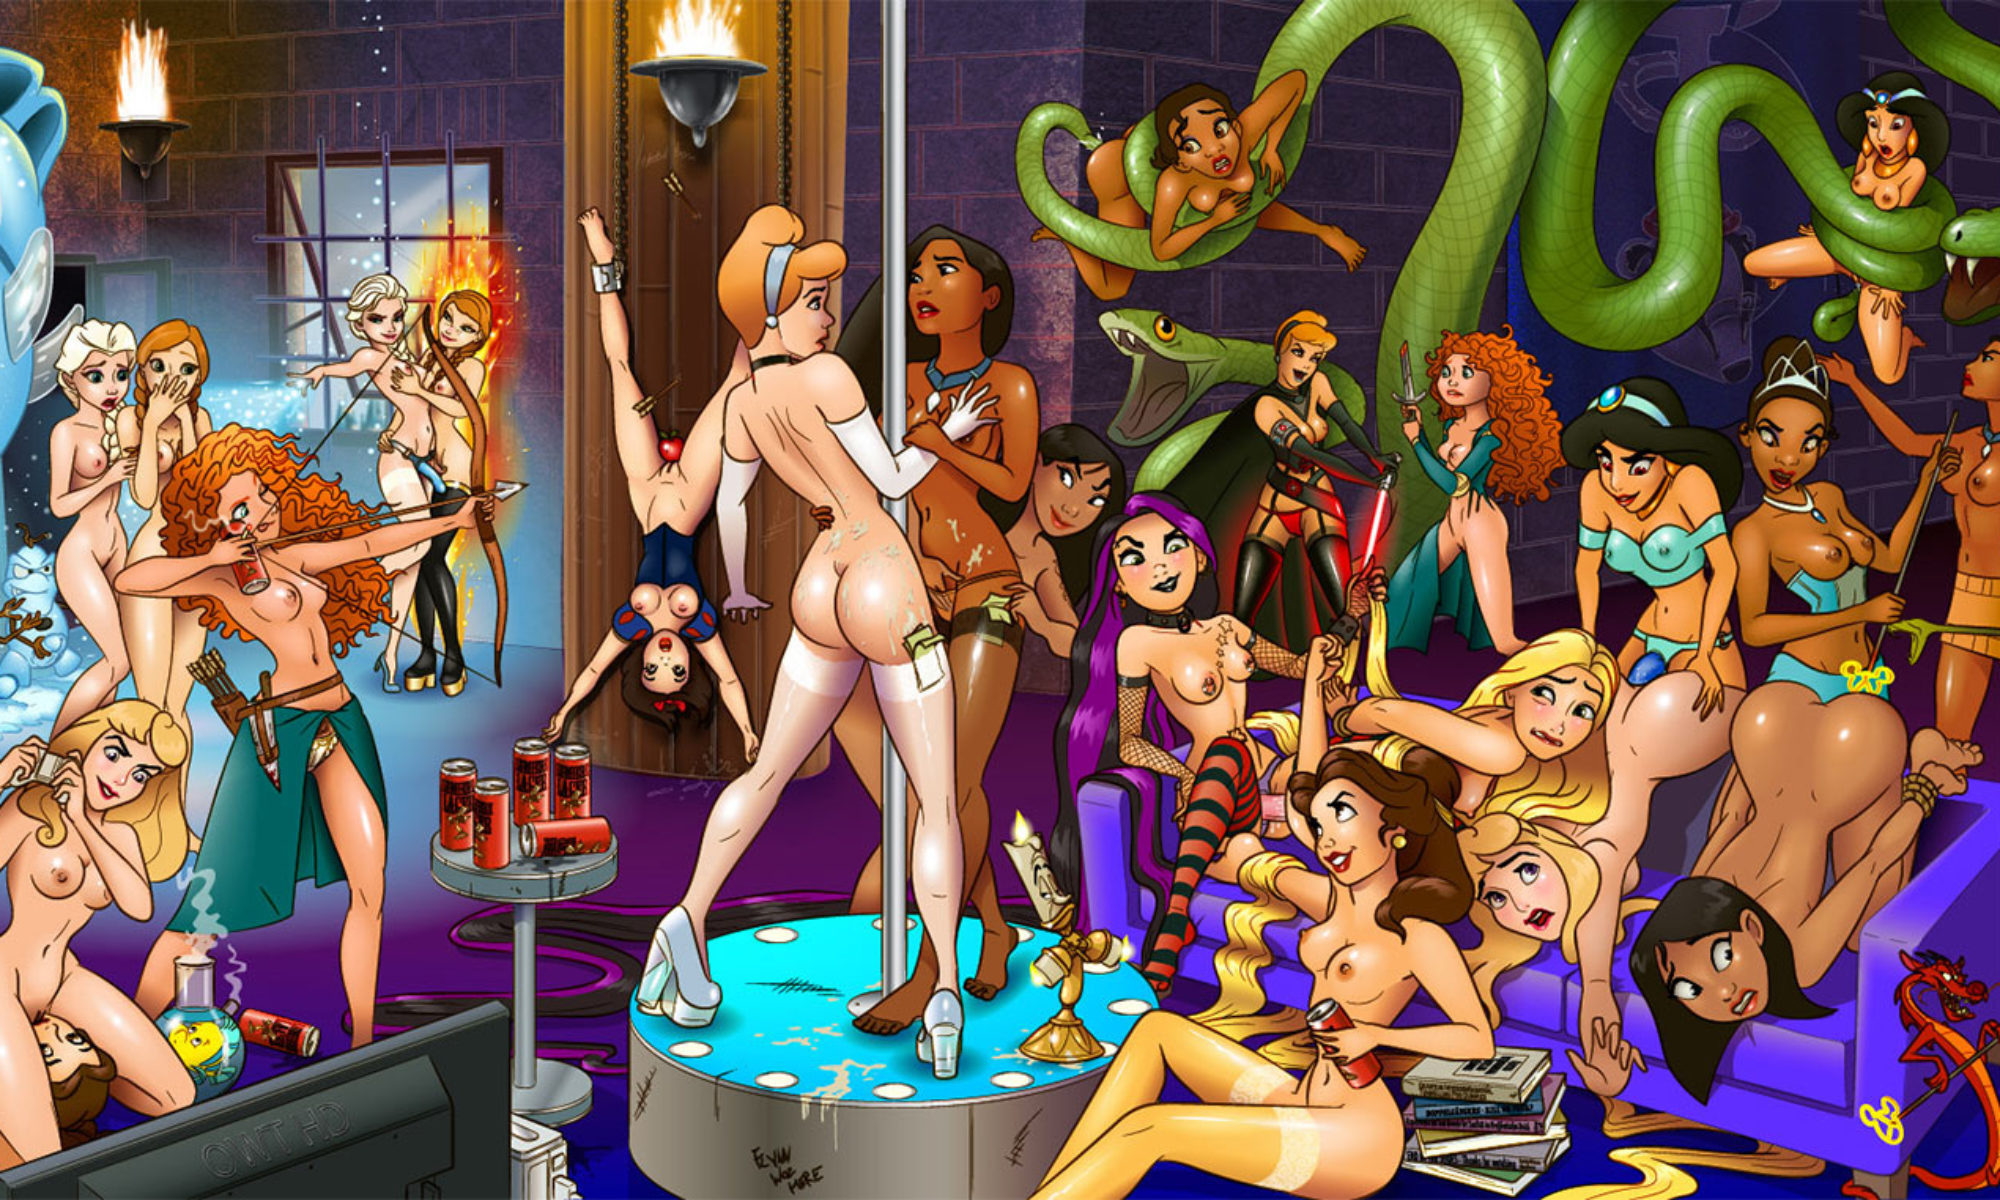 Disney porn - Disney sex pictures and videos